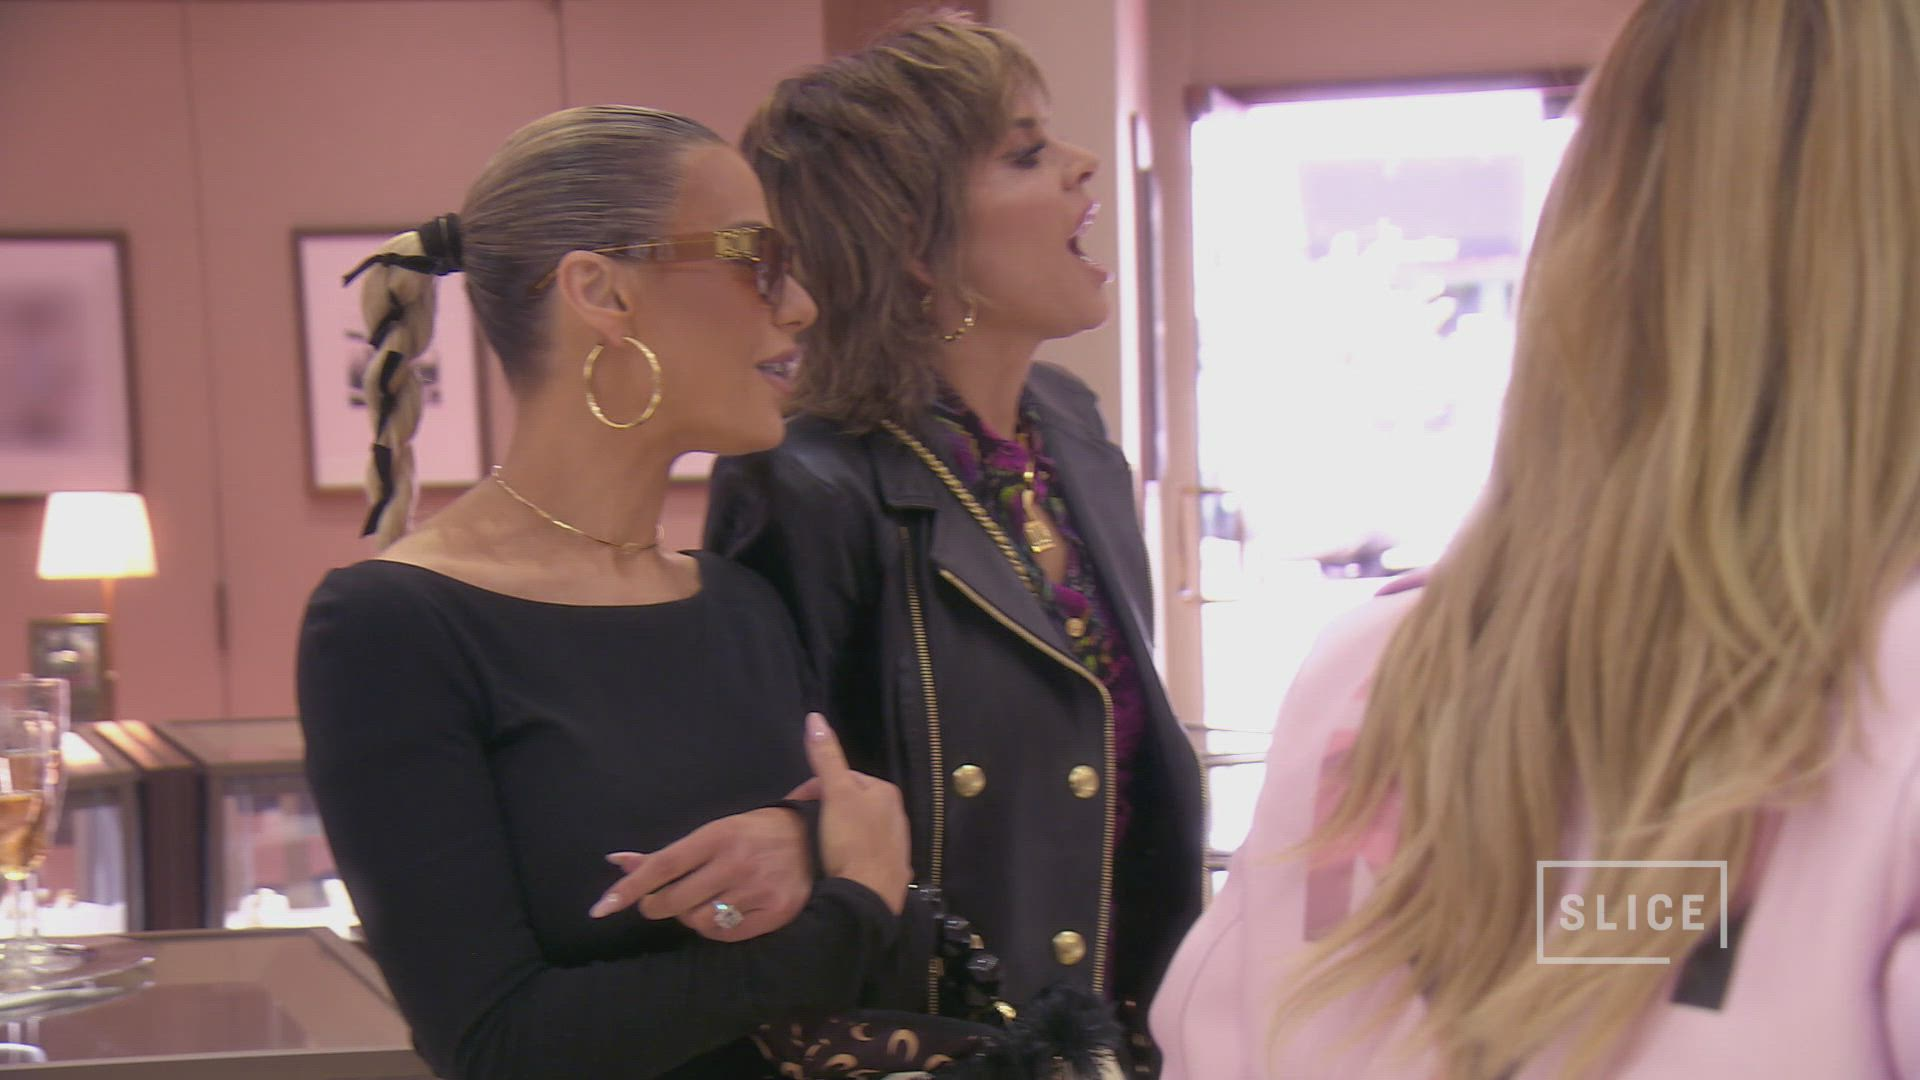 The Real Housewives of Beverly Hills Season 11 Teaser. Go to a video page.